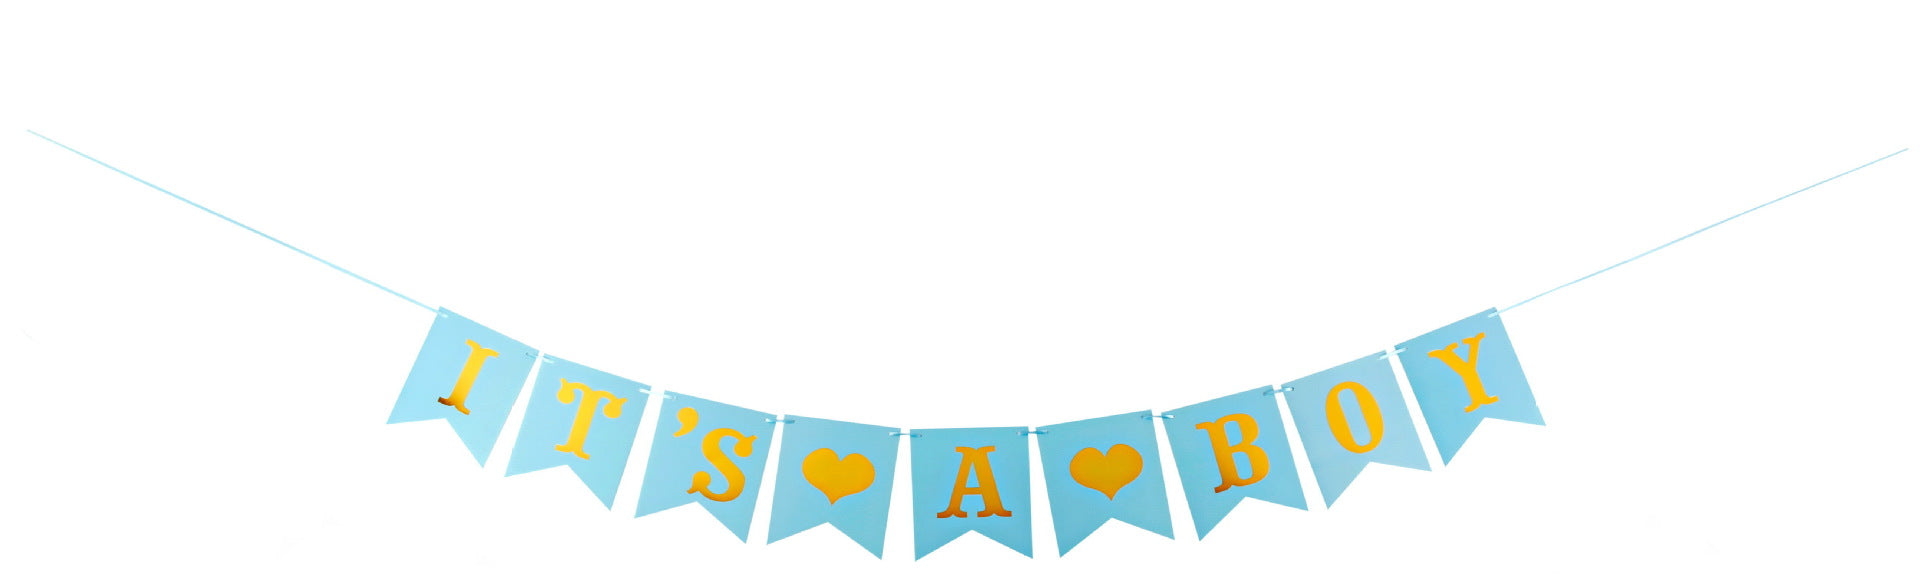 It's A BOY Banner Bunting Christening Baby Shower Garland-50Pcs Free Shipping - Sunbeauty